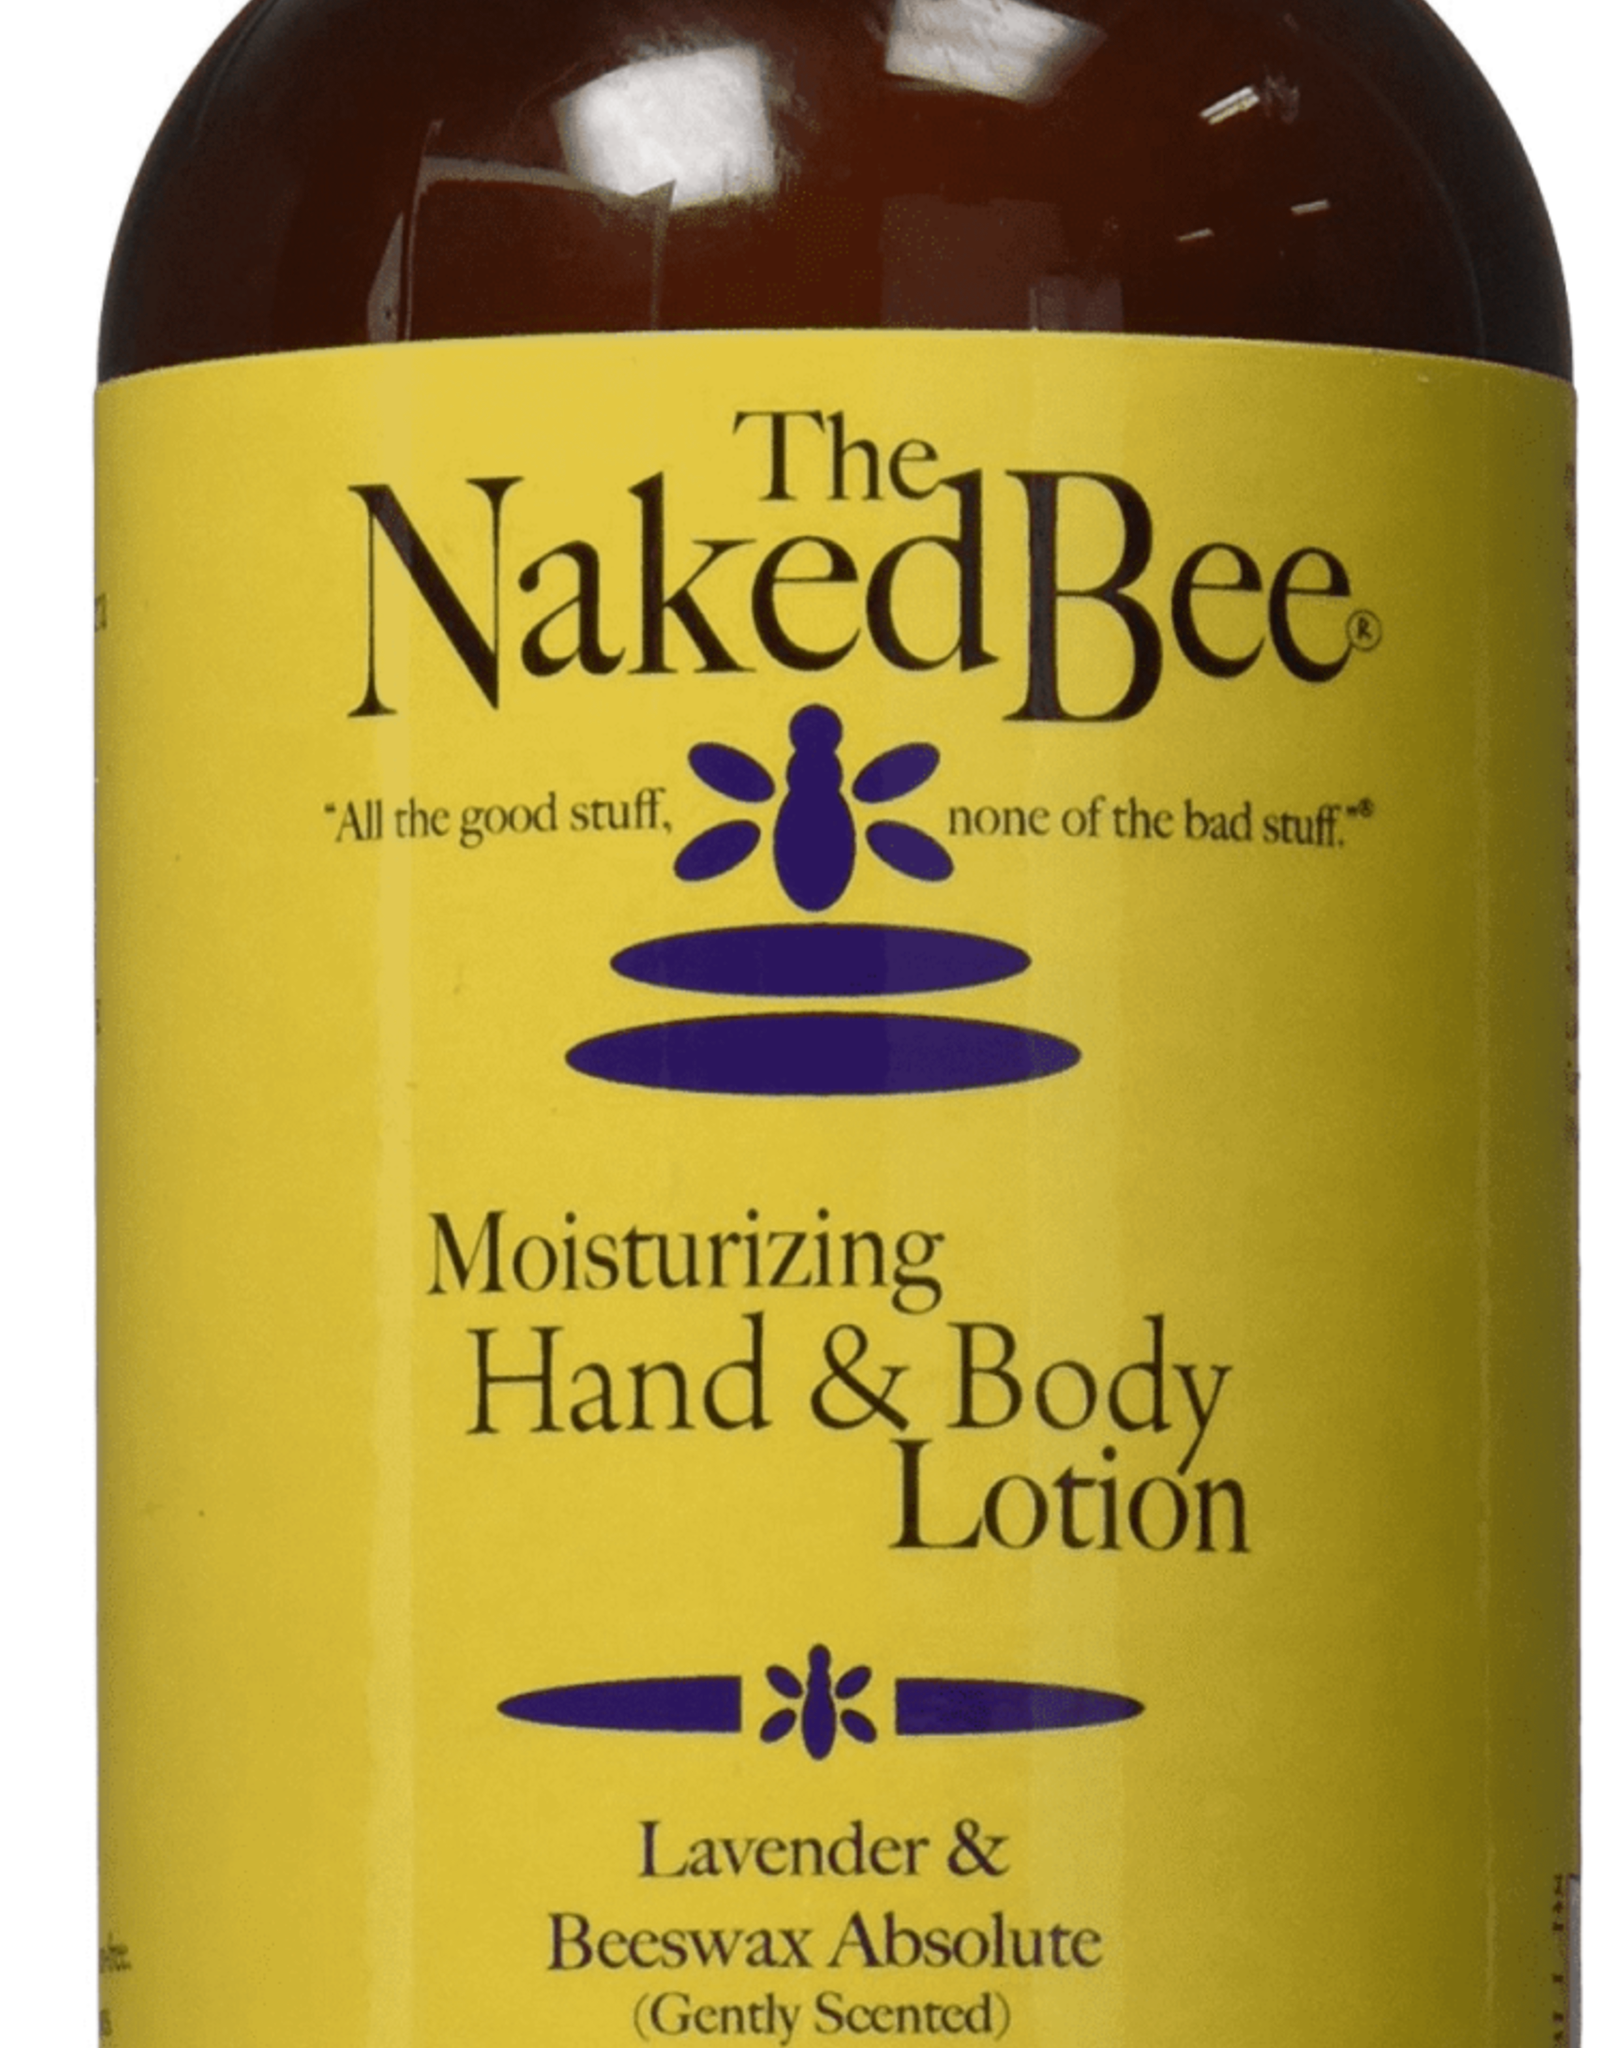 Naked Bee Naked Bee Moisturizing hand & body lotion Lavender